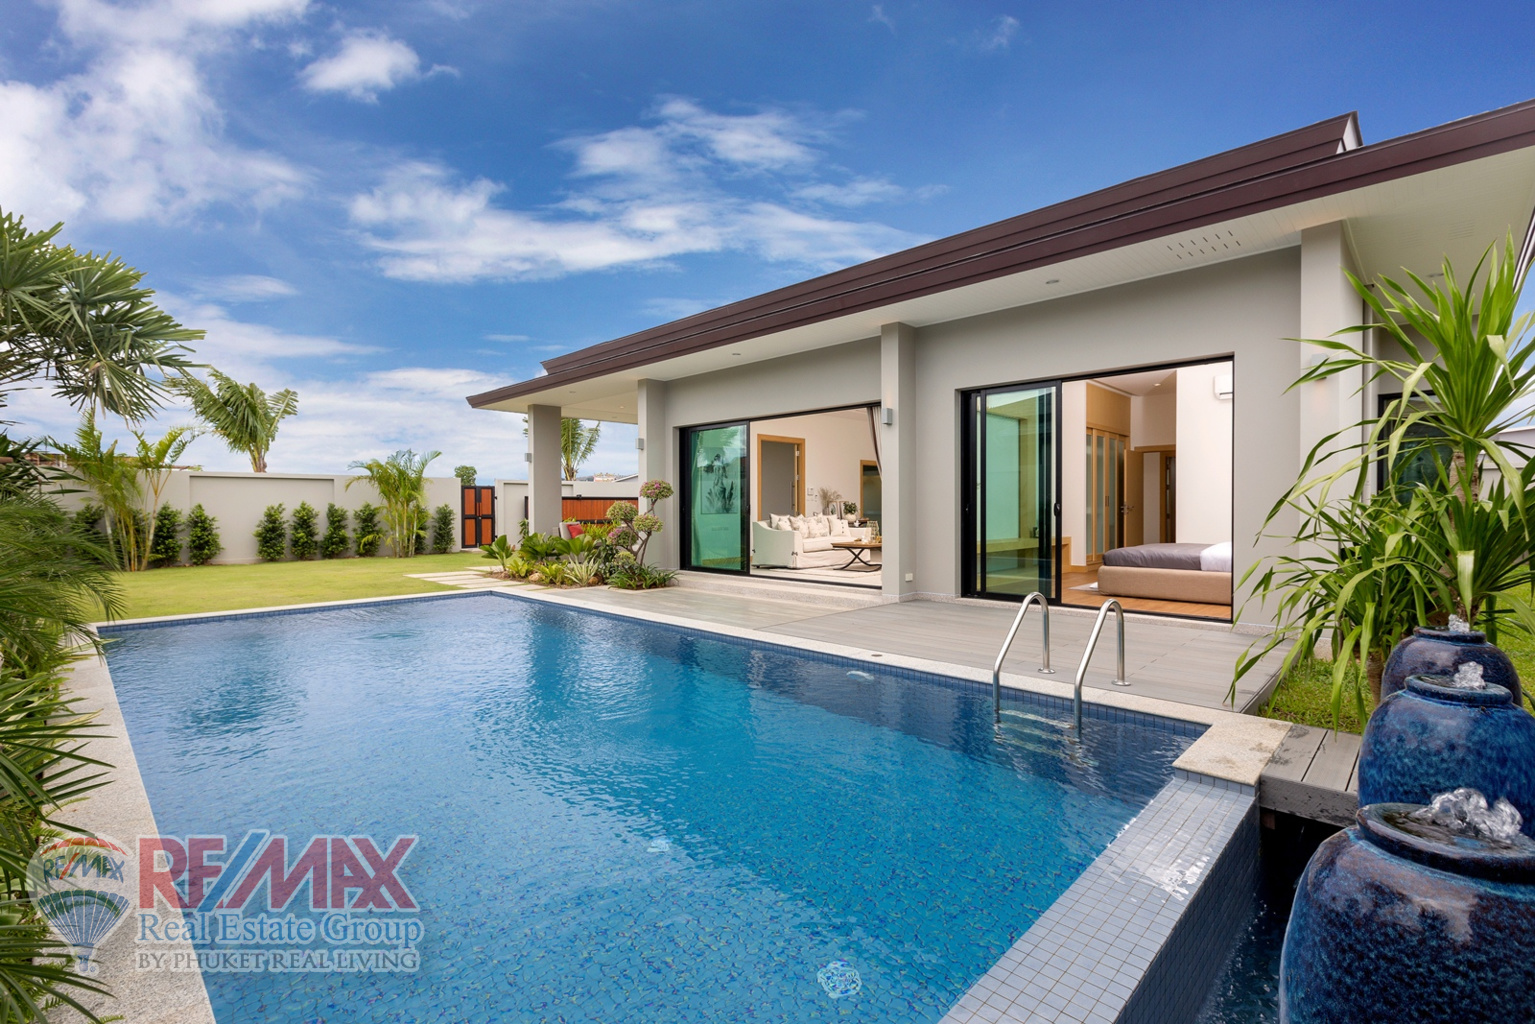 Properties Available For Sale on The Island of Phuket Including Villas And Deluxe Apartments